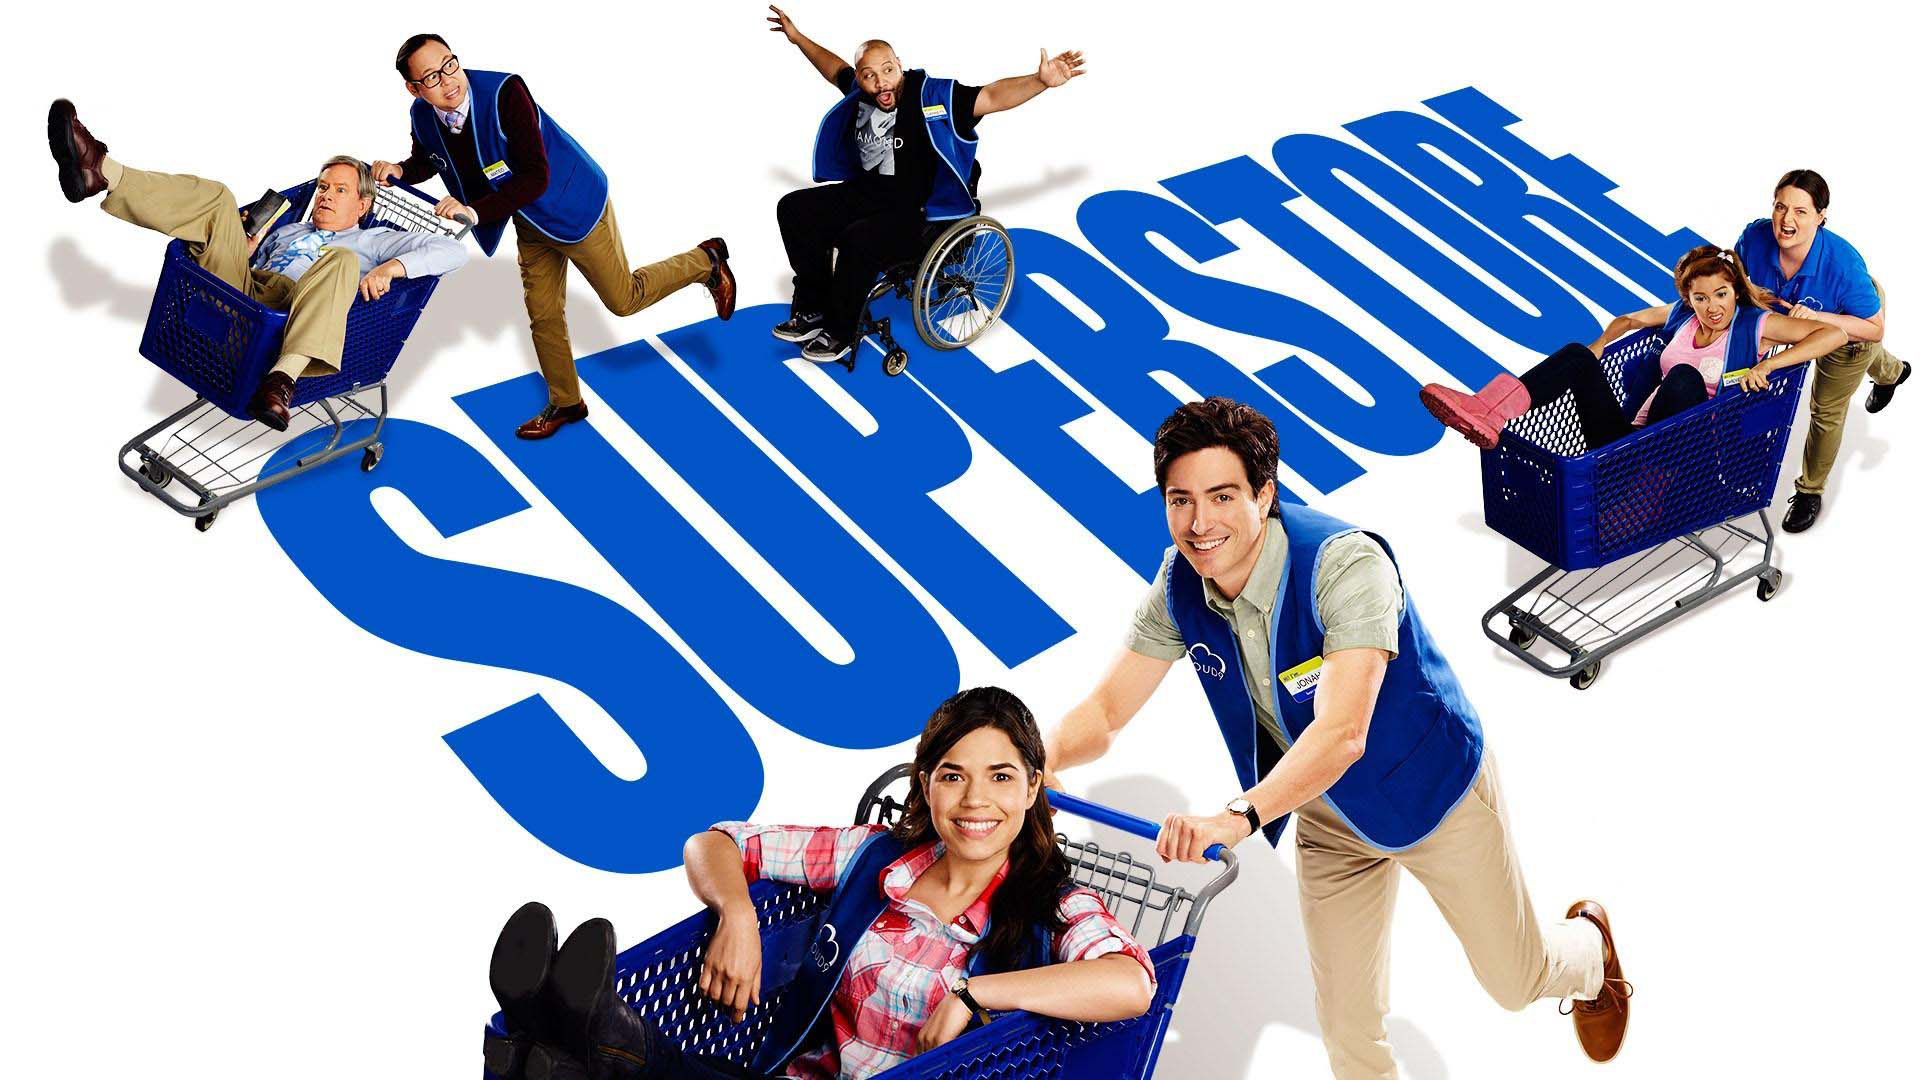 Superstore-2015-Tv-Series-HD-Wallpaper.jpg